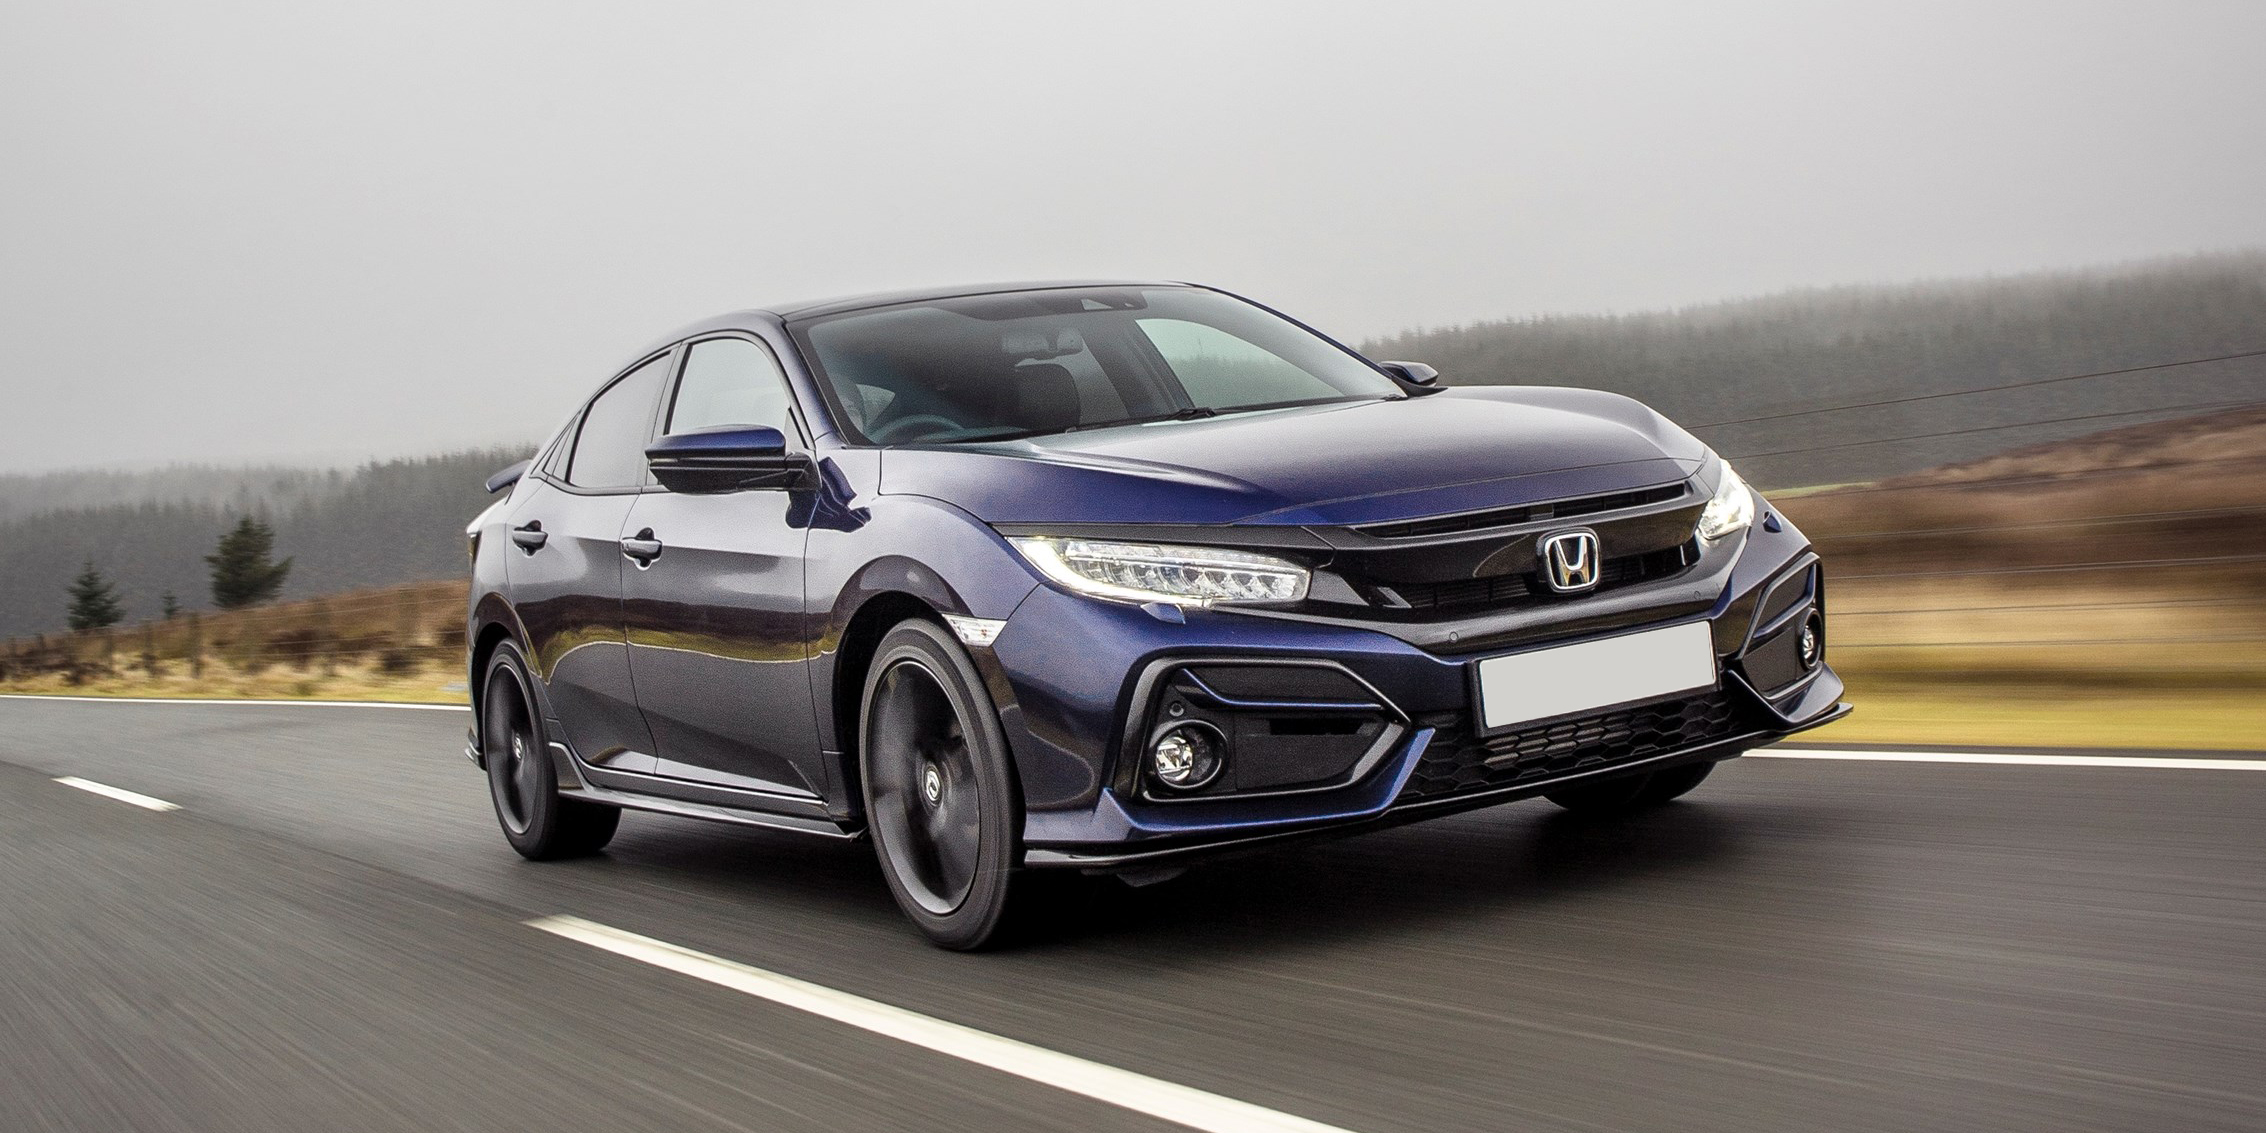 Honda Civic Specifications Prices Carwow